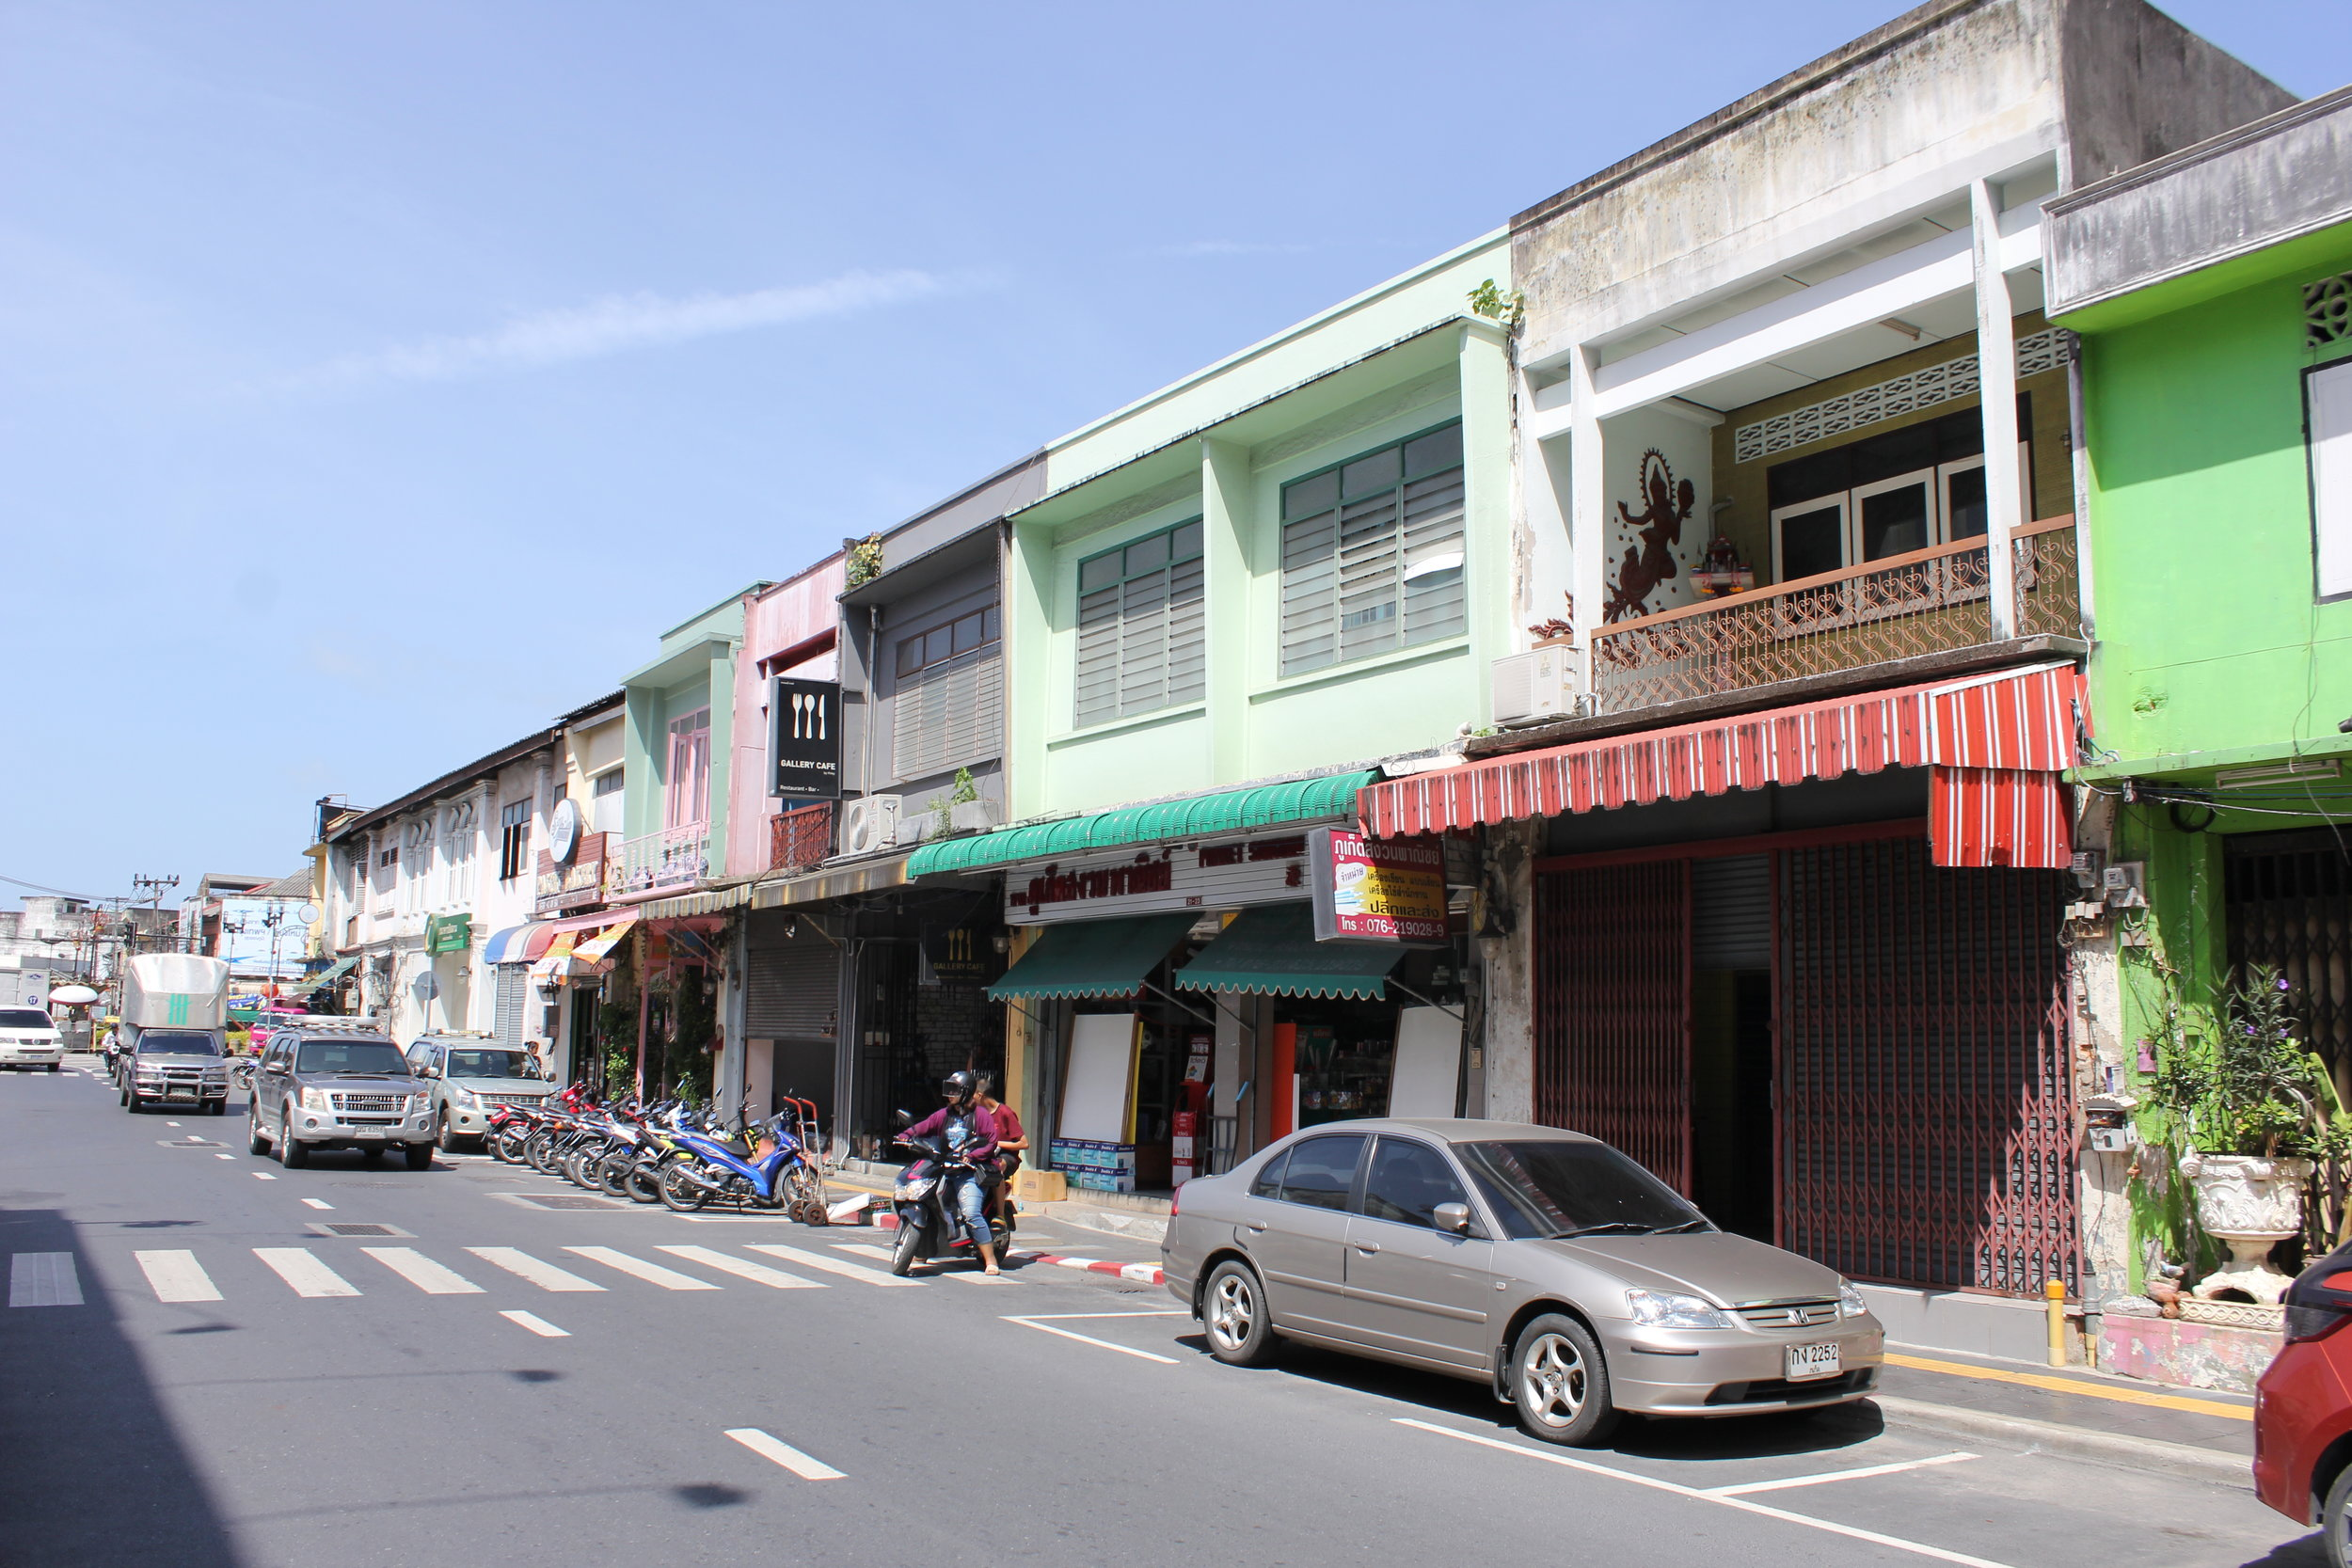 Phuket's funky Old Town with its patinas of colonial history